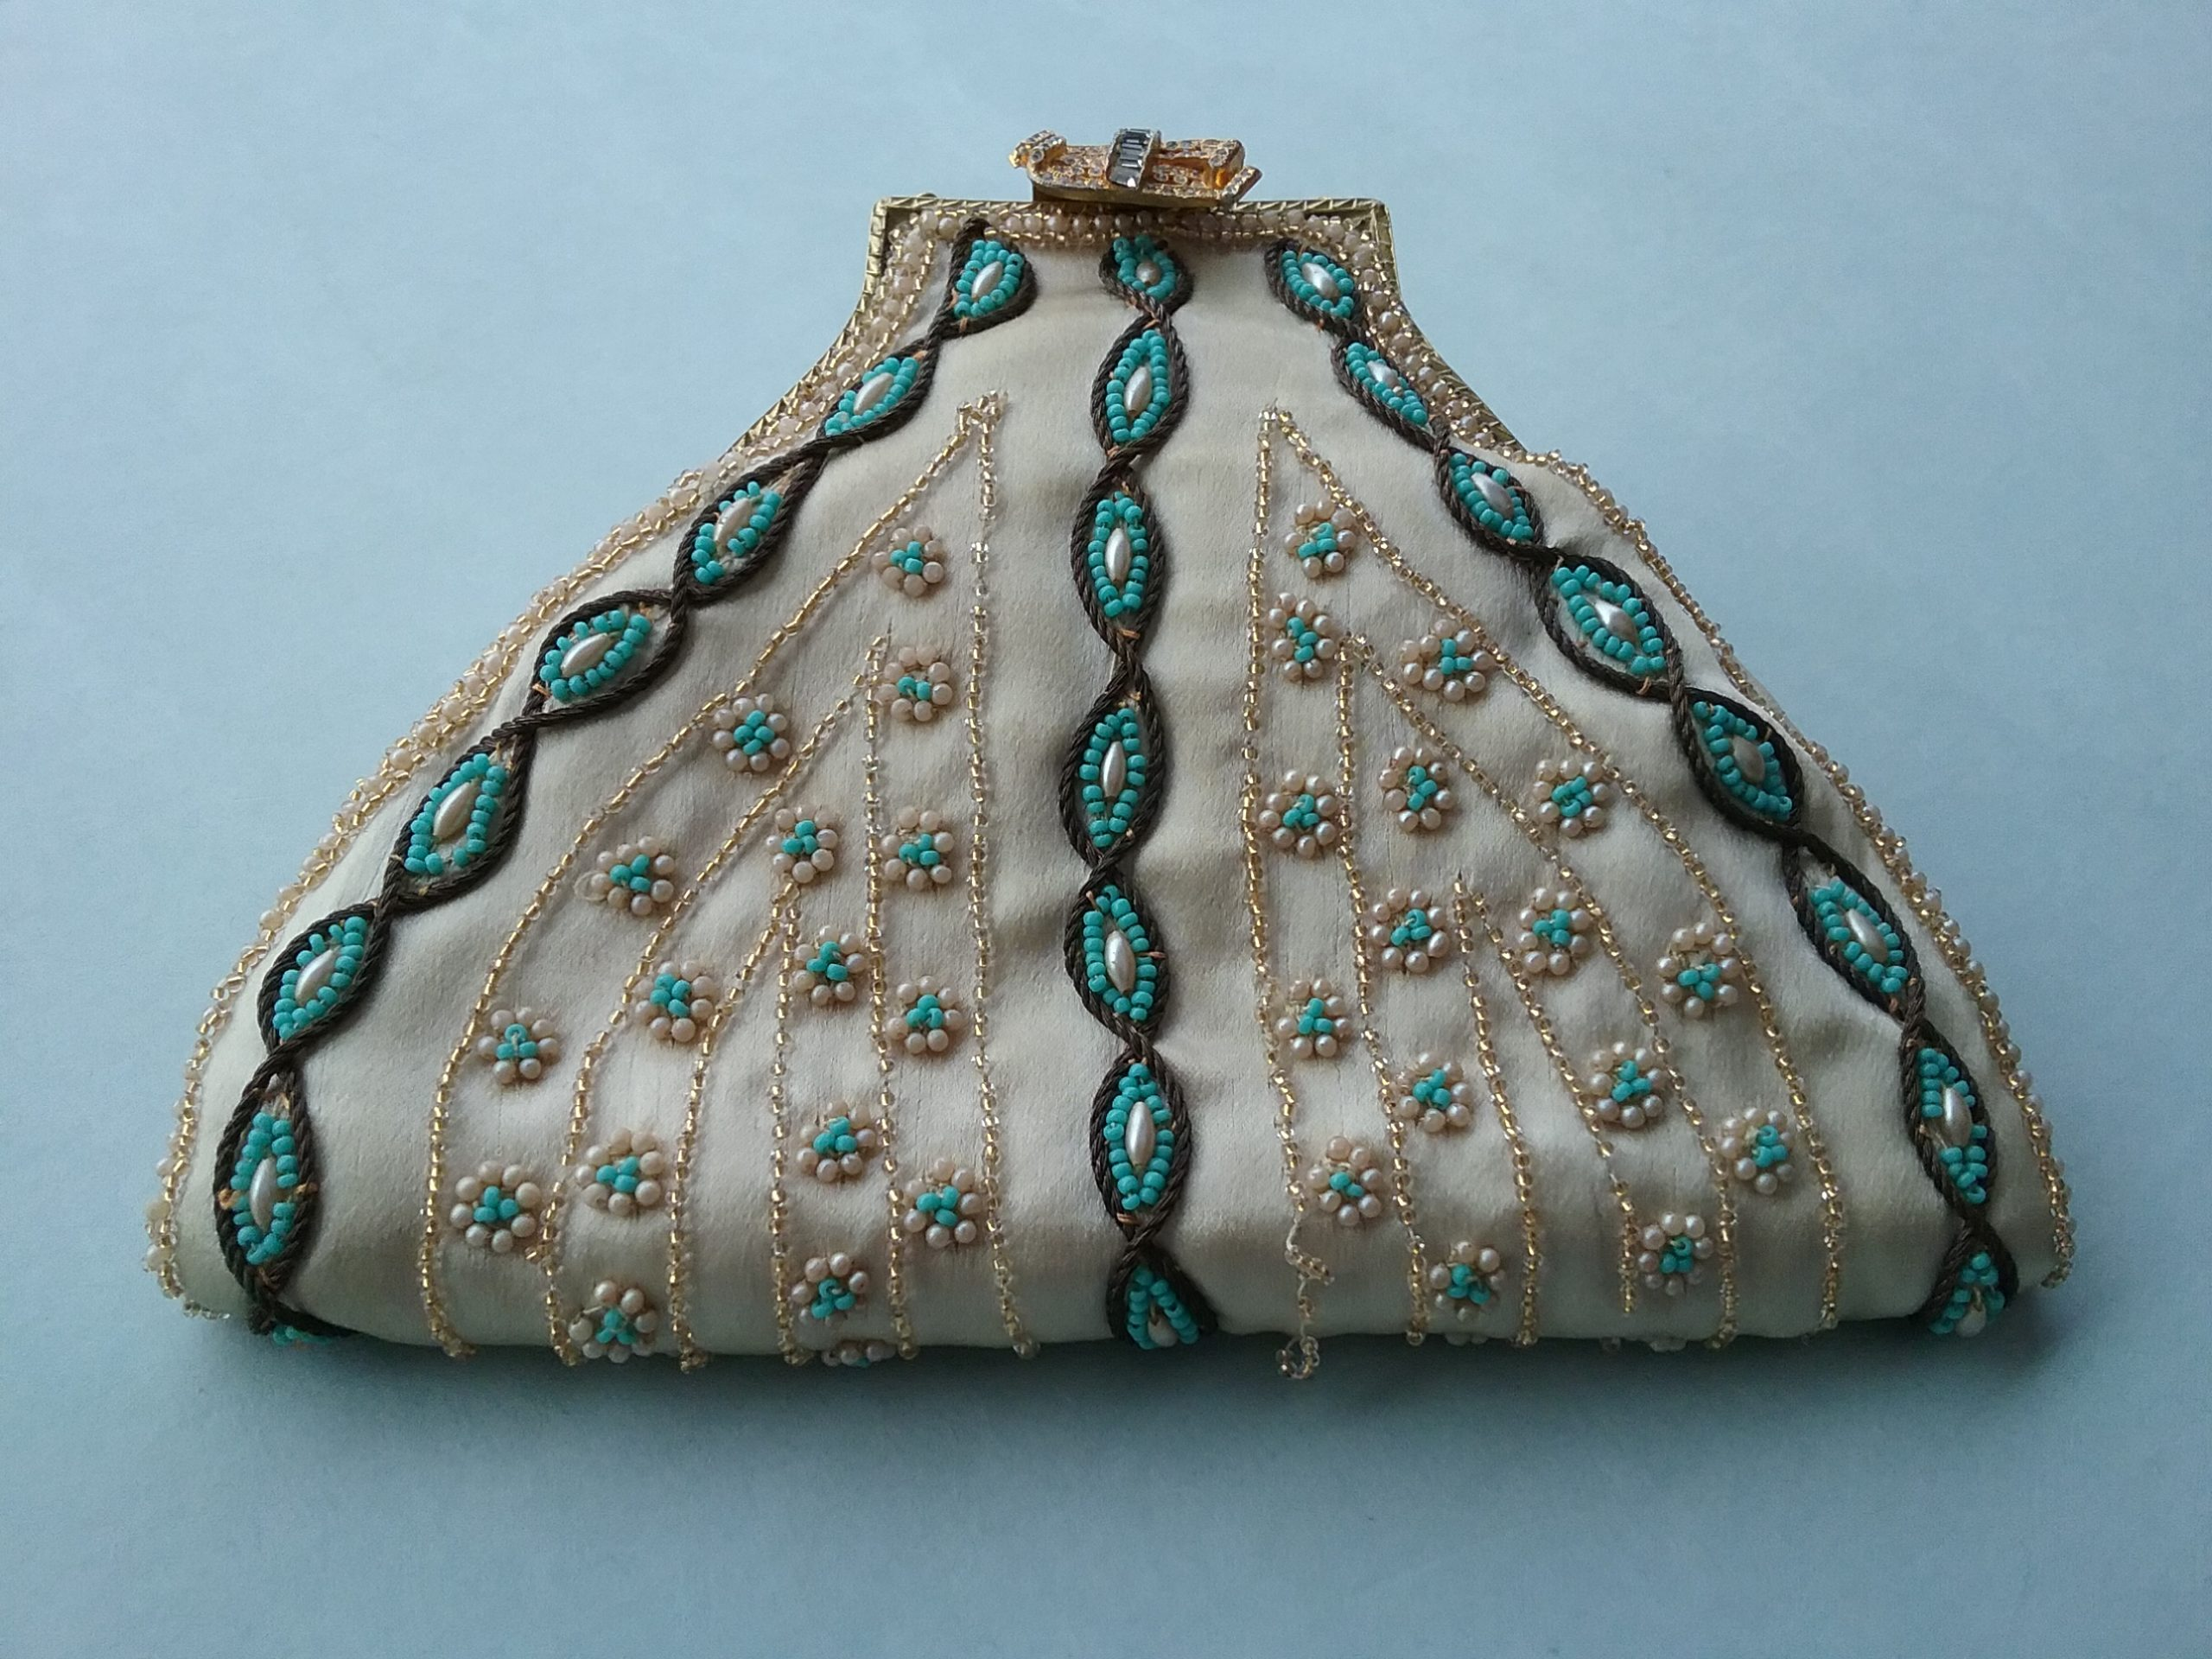 Clutch Purse: Cream-colored satin clutch purse with turquoise, gold, and imitation pearl beads. Donated by Mrs. Vernon Johnson. MCHS collections, #1973.20.1a.